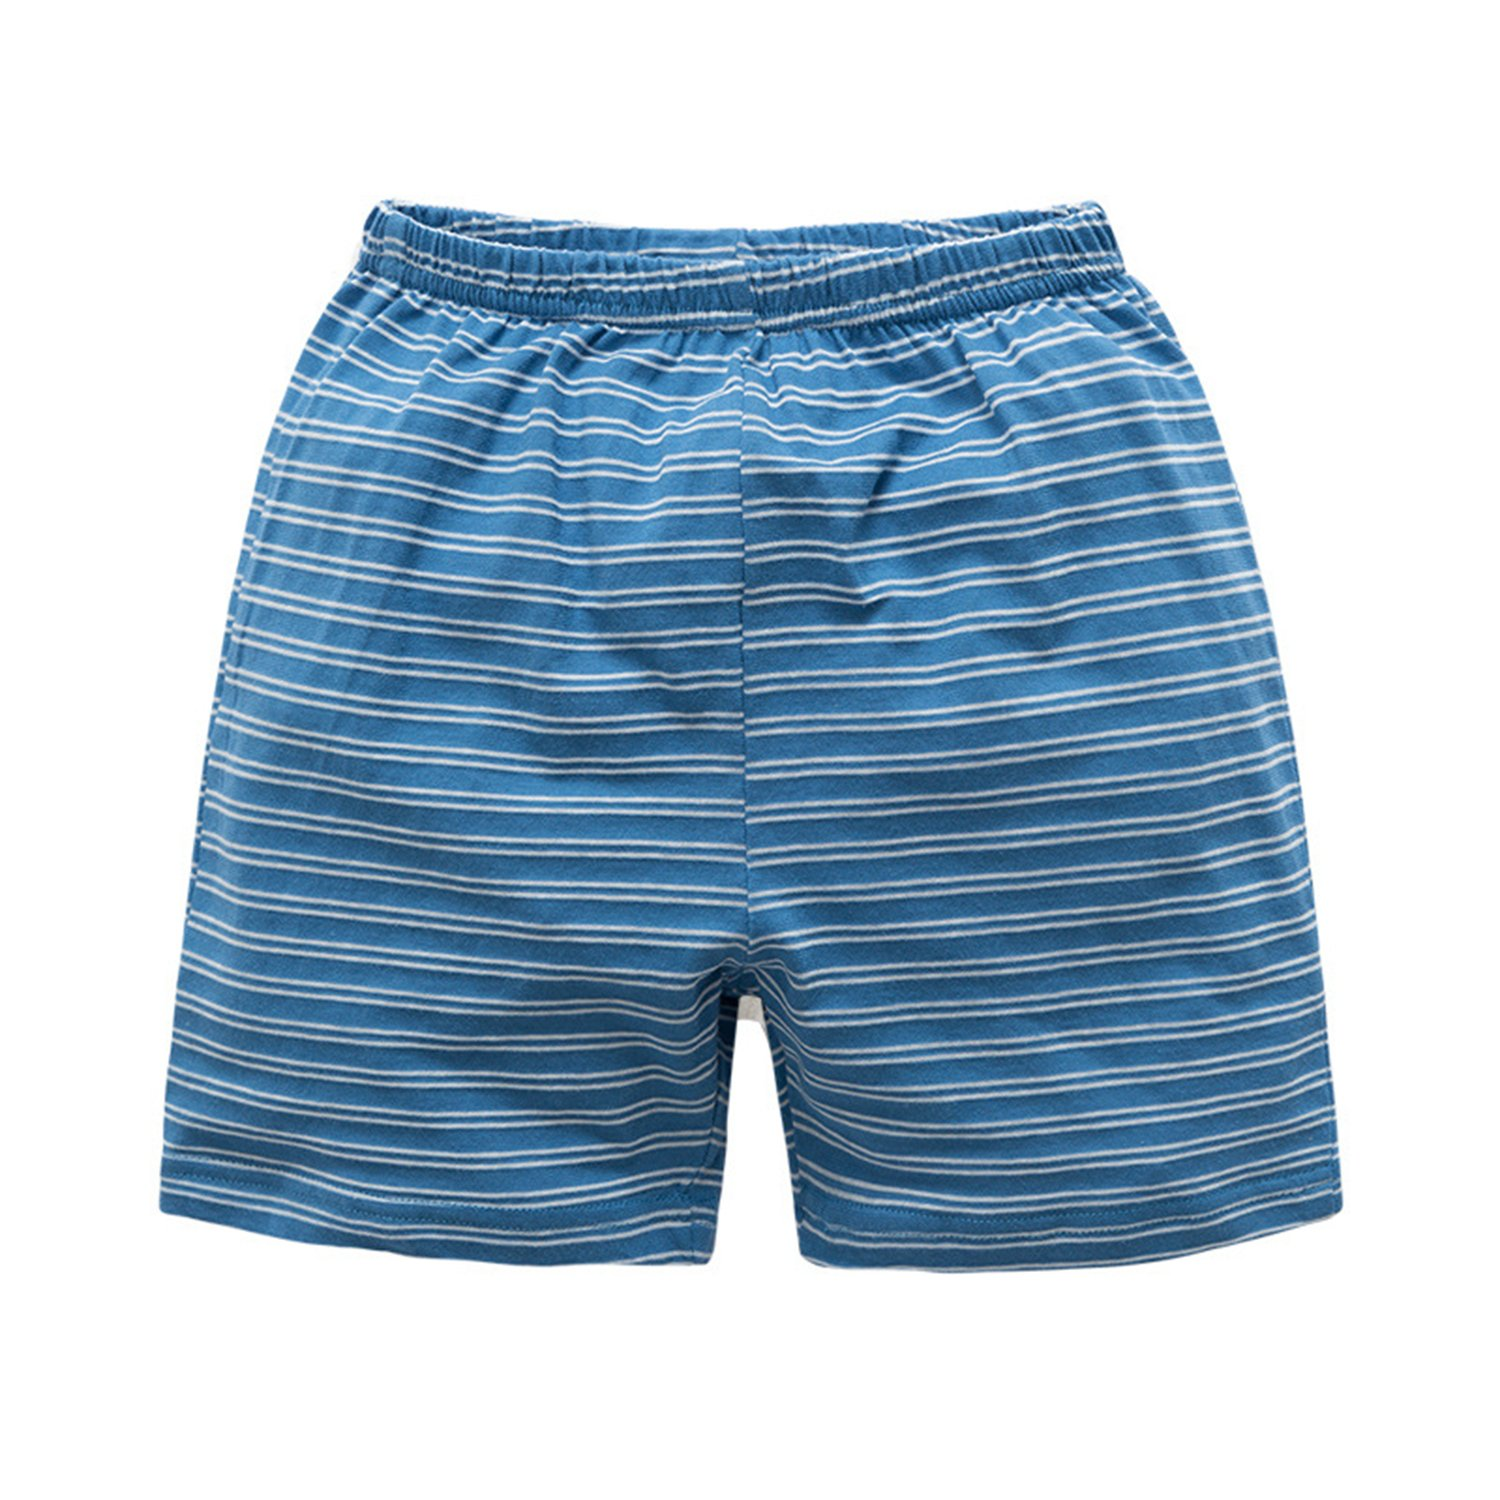 JanLEESi Baby Shorts 3-Pack Toddler Boys Small Cotton Pants